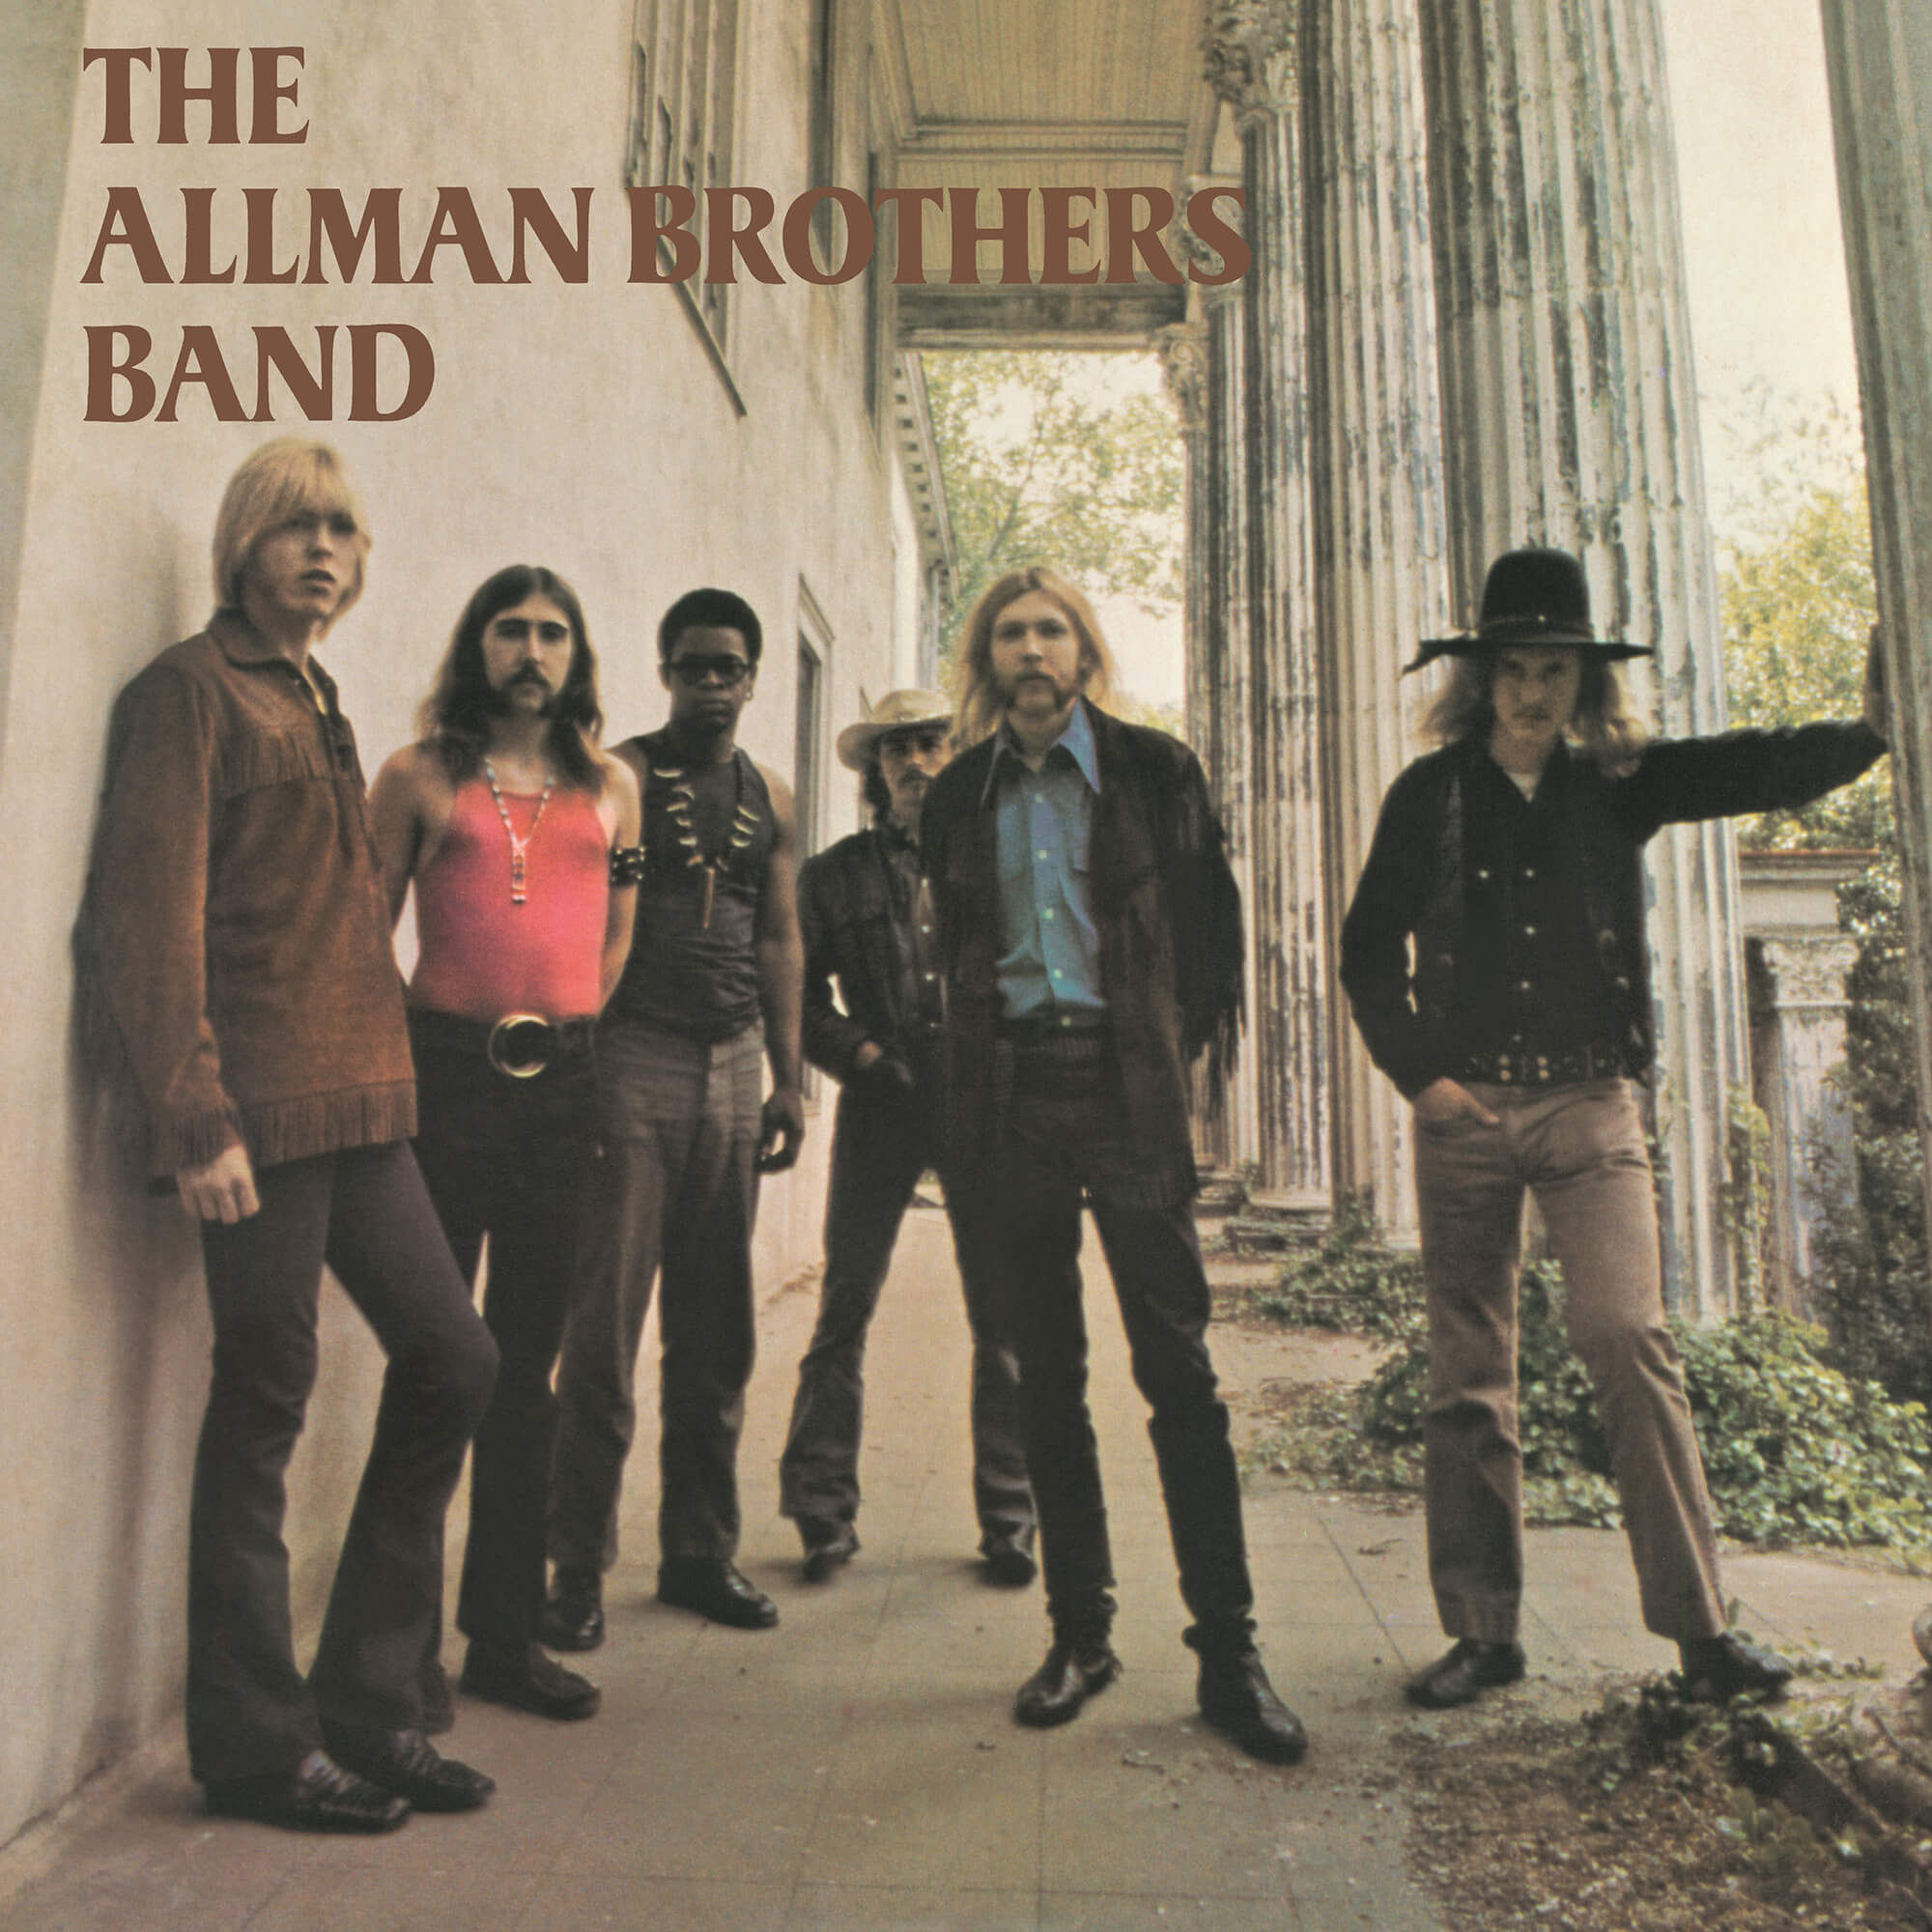 The Allman Brothers Band - The Allman Brothers Band, Idlewild South, Brothers And Sisters